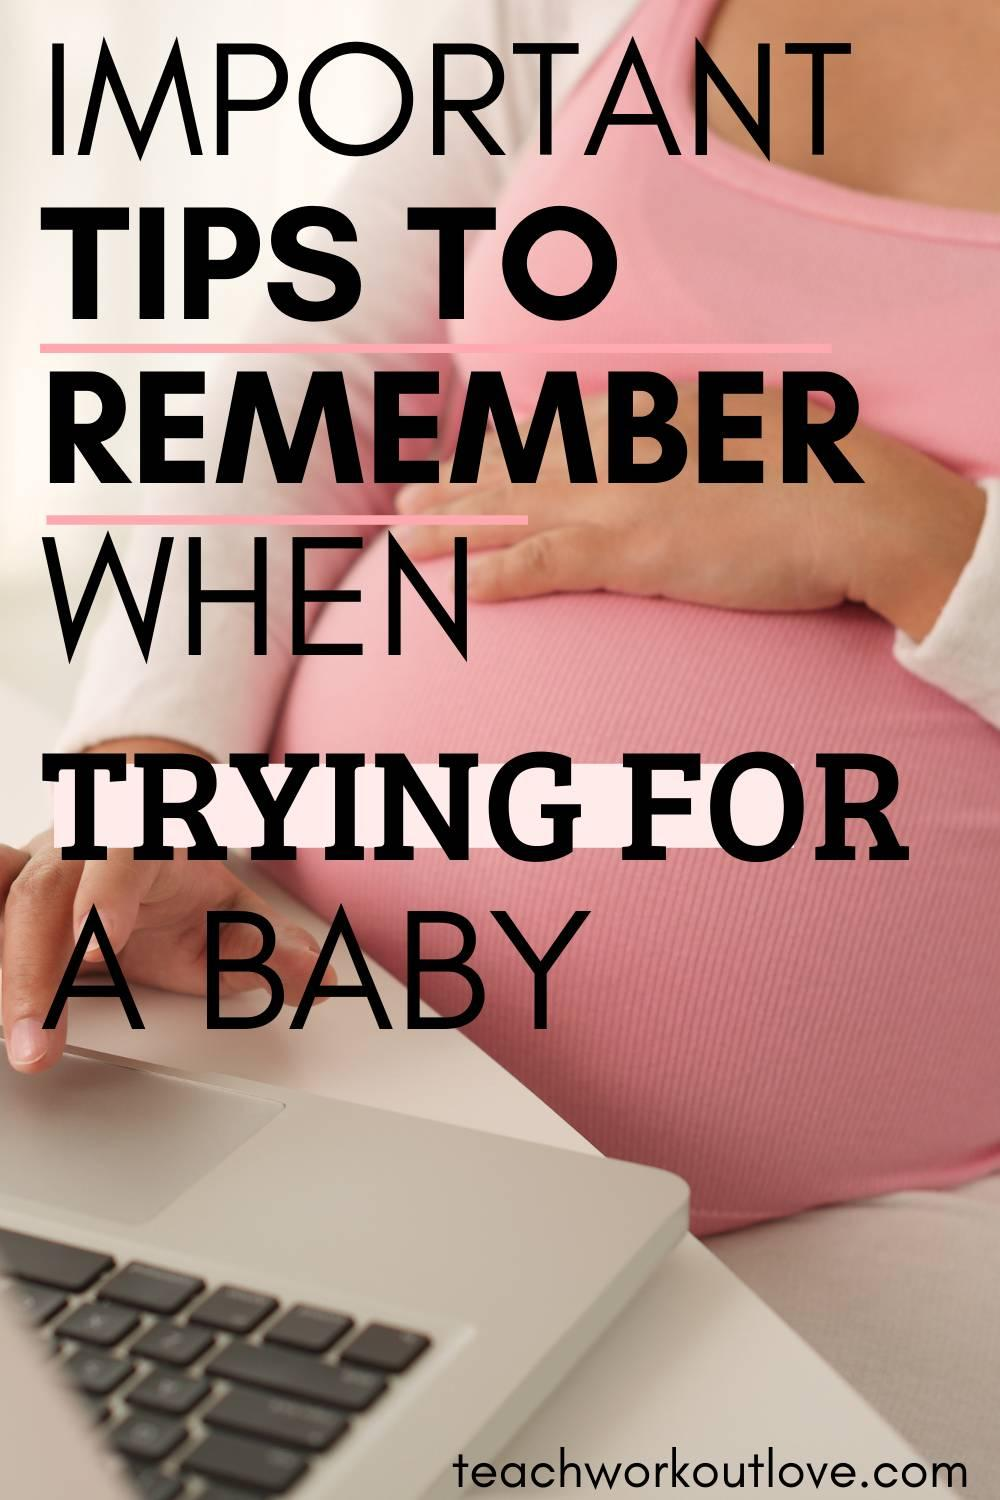 Starting or growing your family will change your life as you know it for the foreseeable future. Here's some tips when trying for a baby.